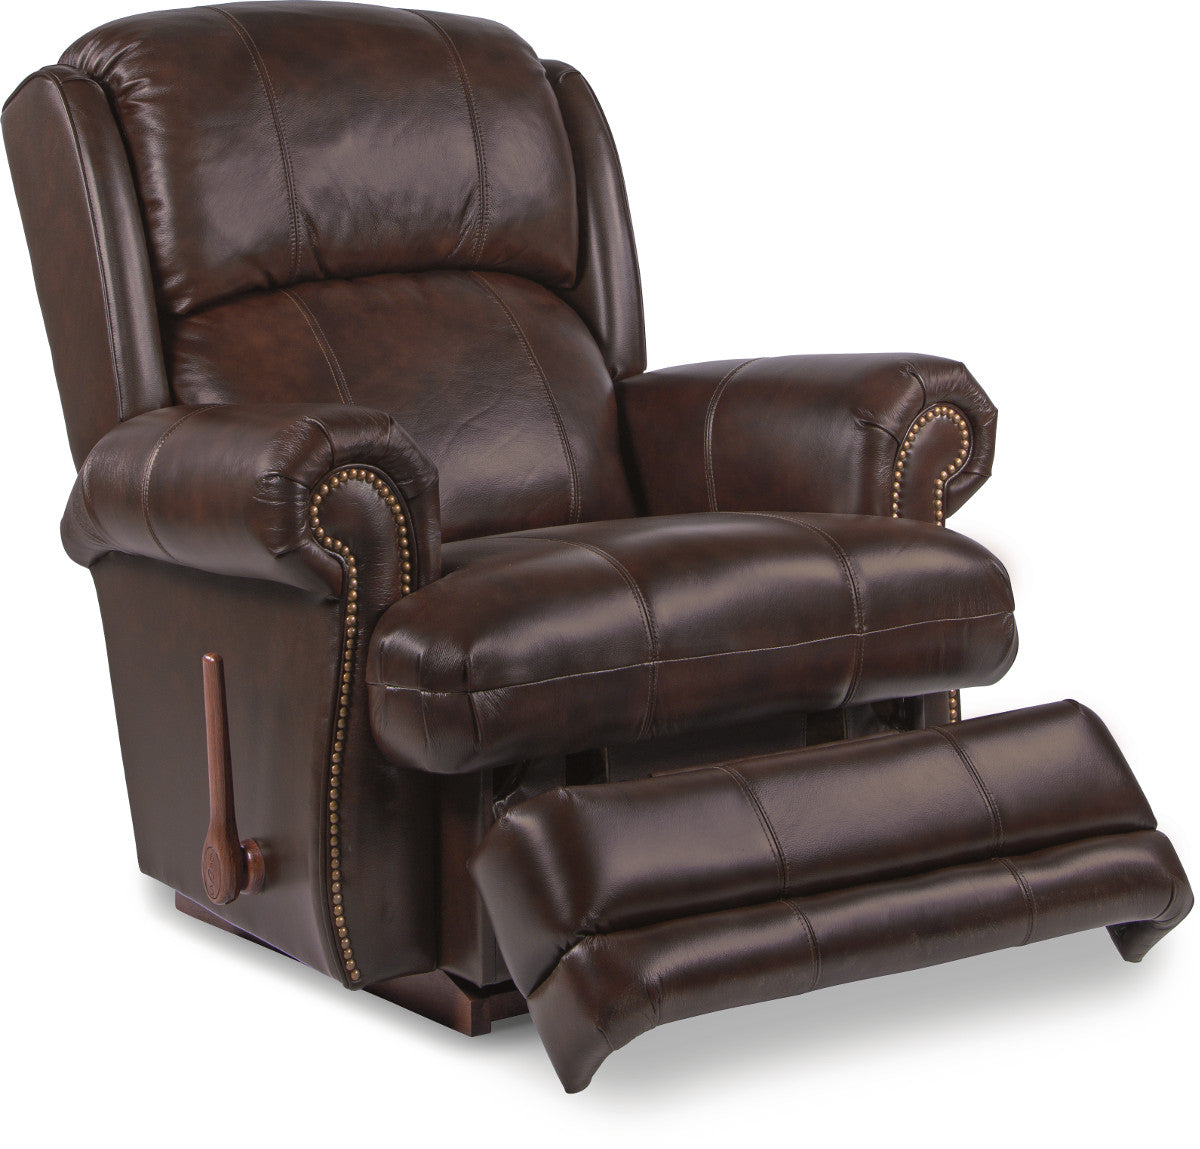 Kirkwood Leather Reclina Rocker Recliner Schleider